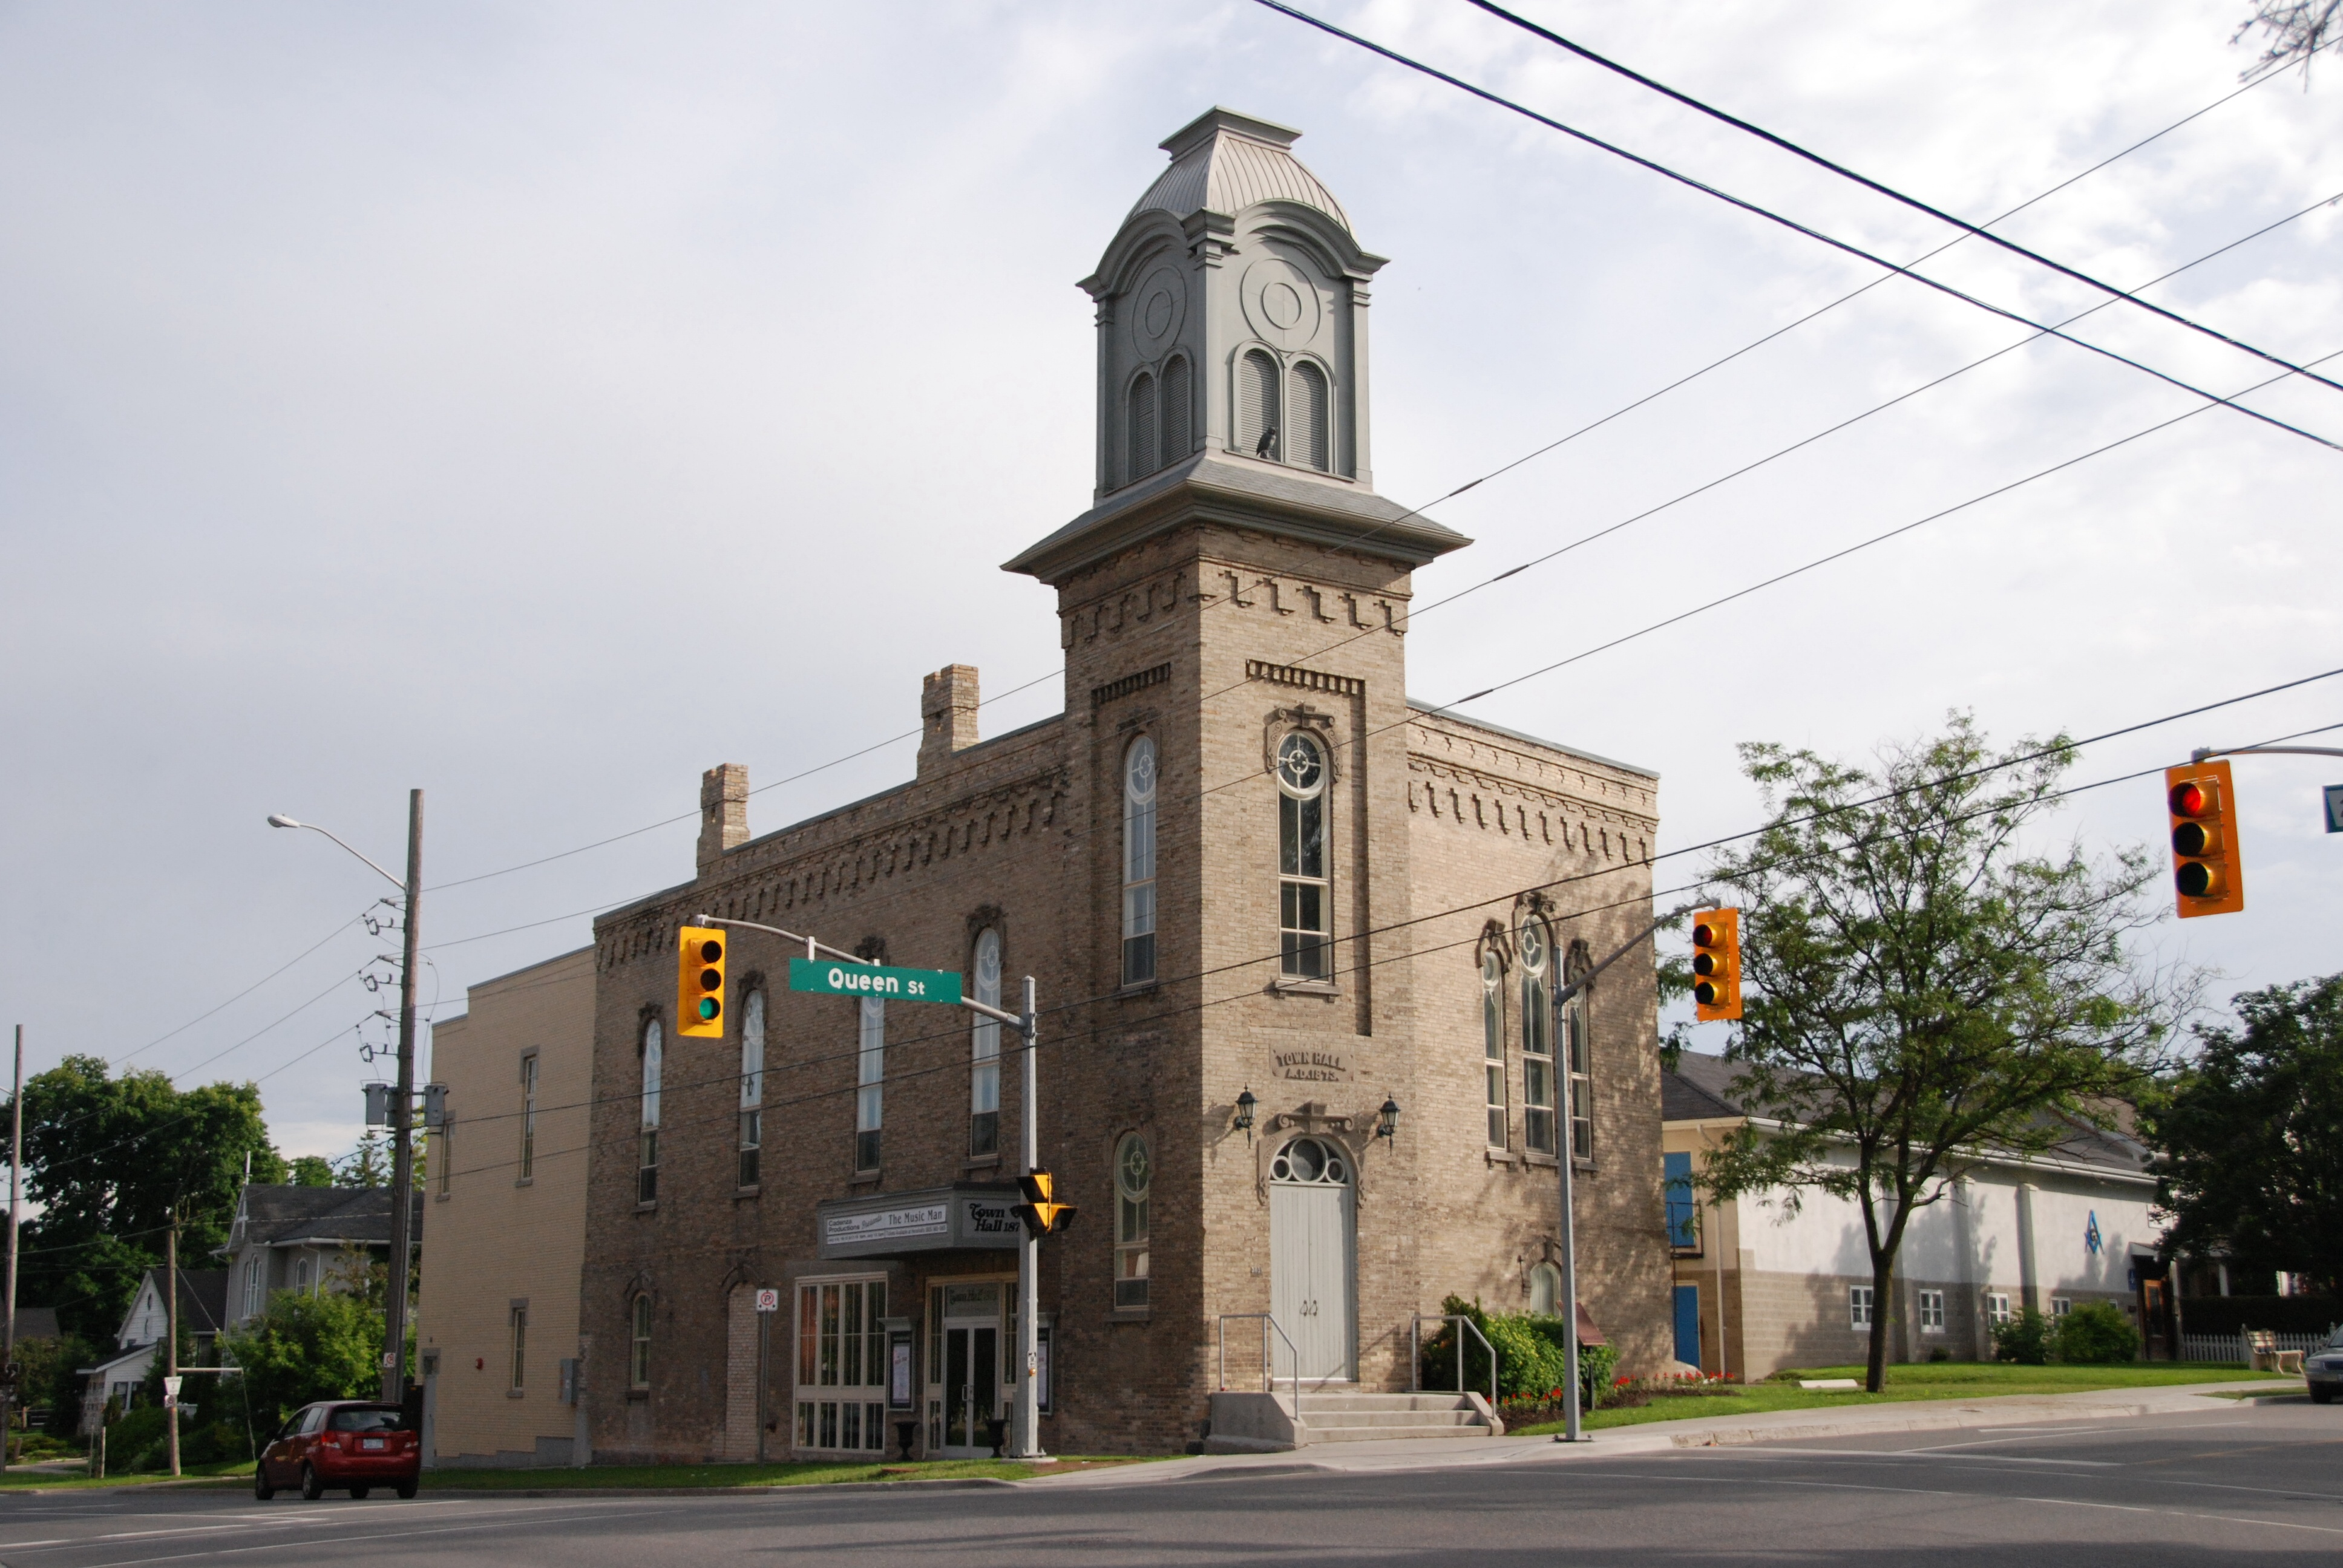 Large brick building with bell tower